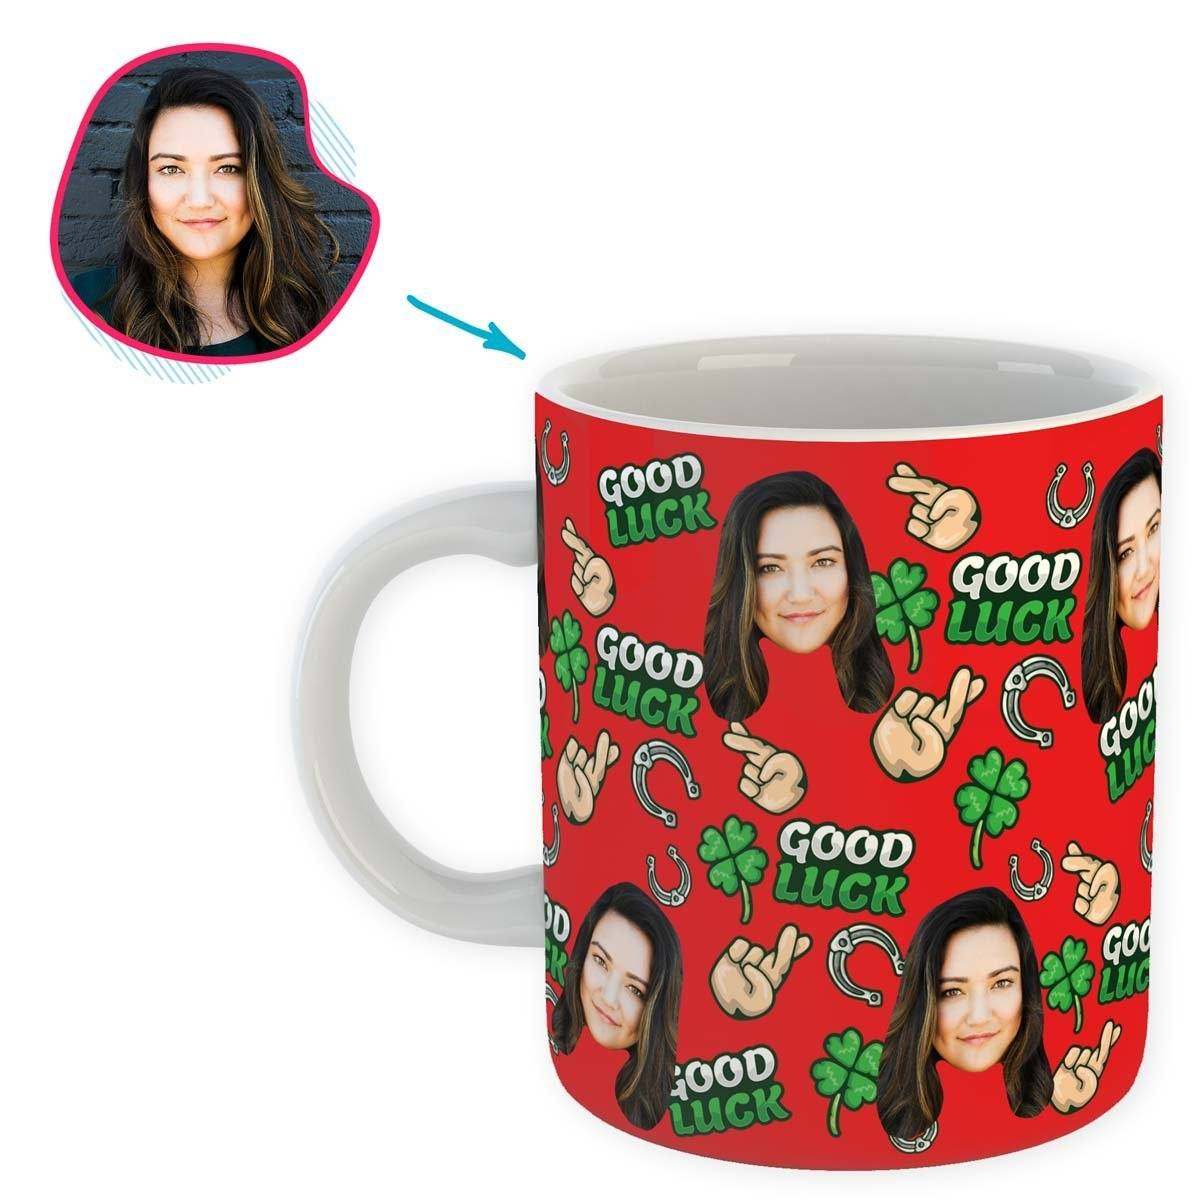 Red Good Luck personalized mug with photo of face printed on it